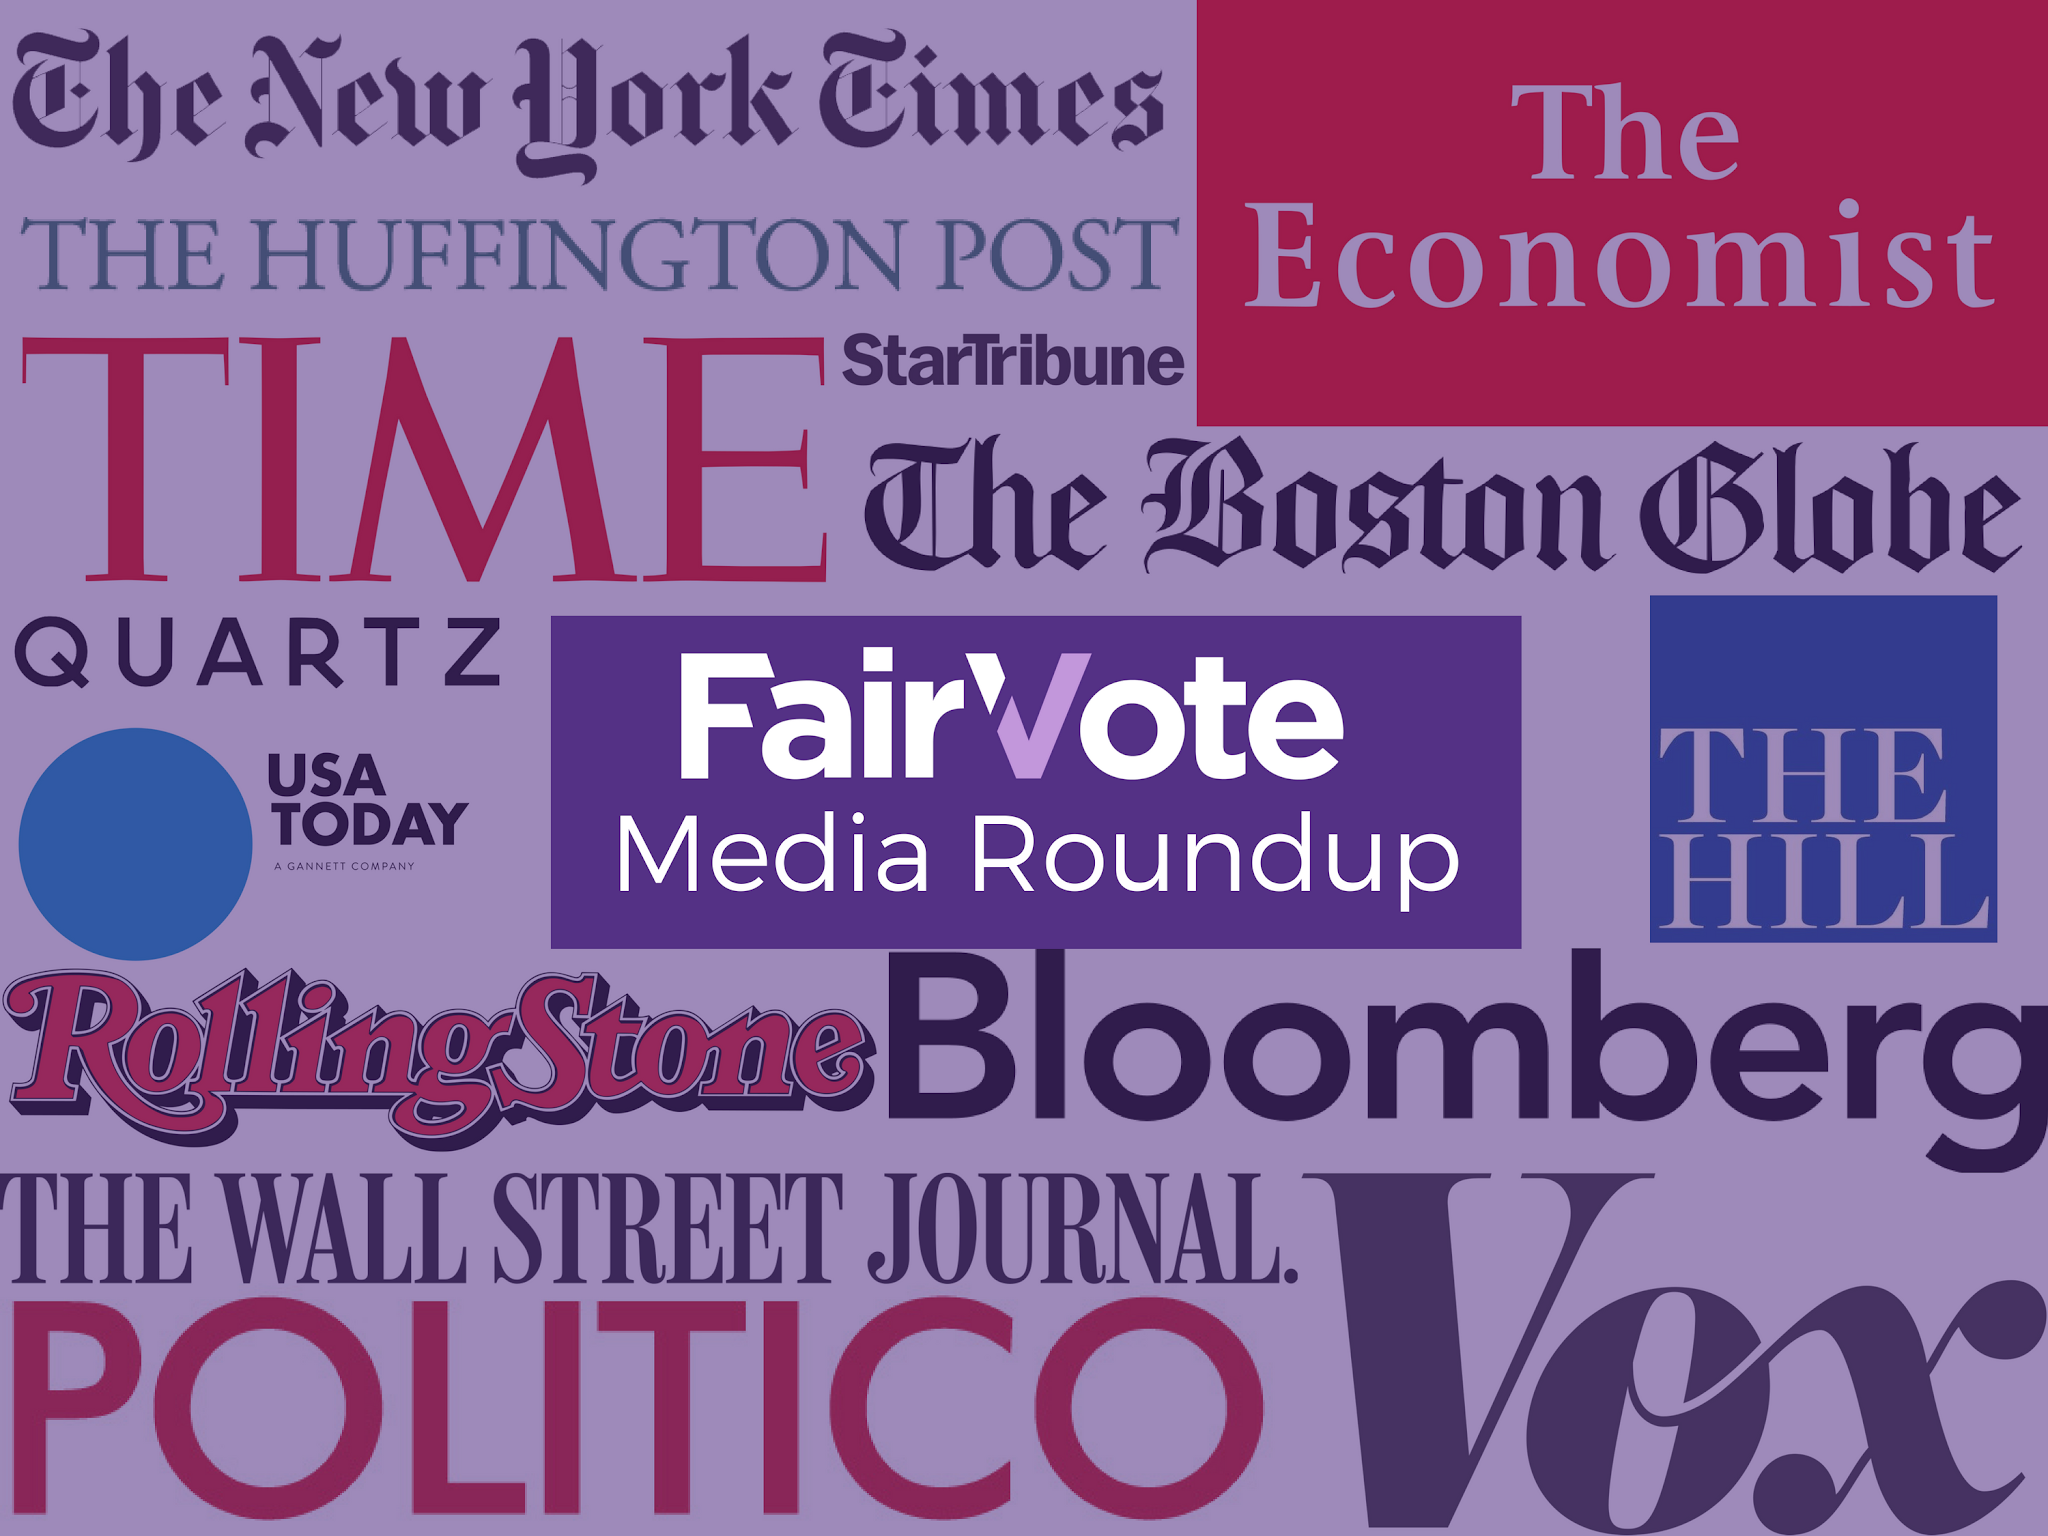 Latest news coverage and editorial support for ranked choice voting